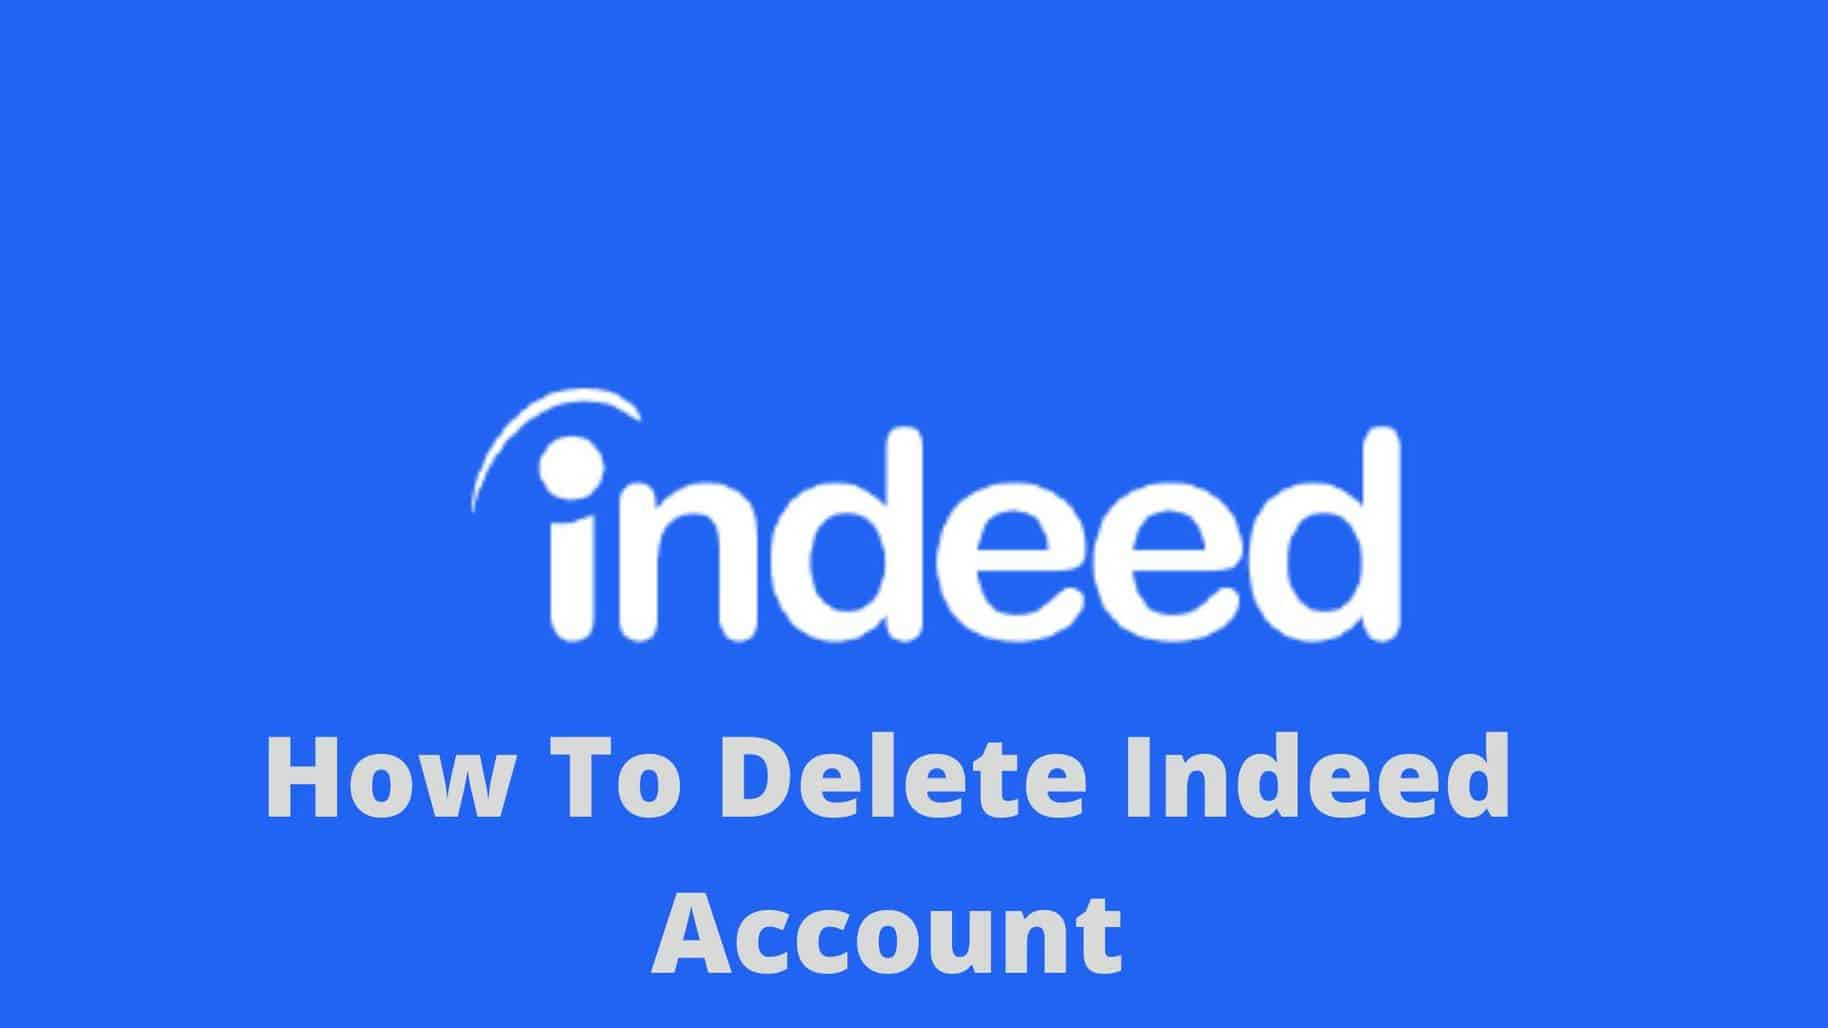 how to delete indeed account